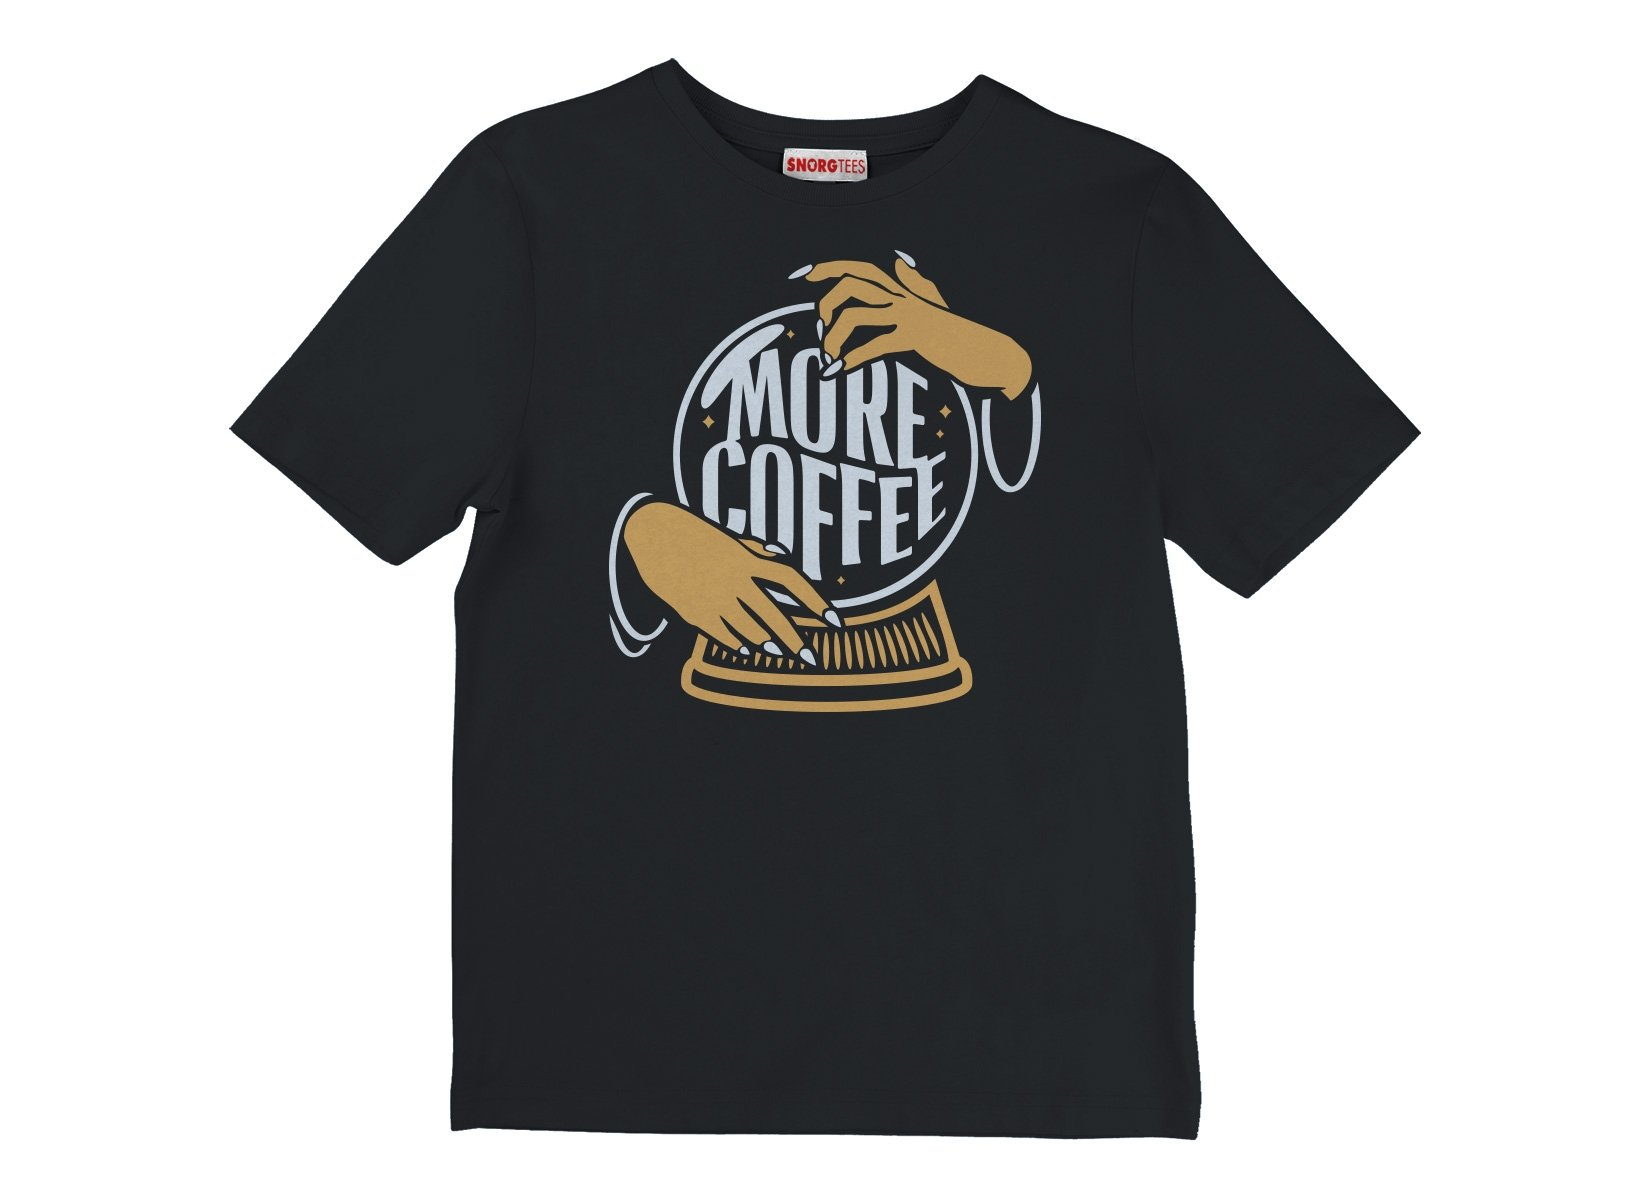 More Coffee on Kids T-Shirt